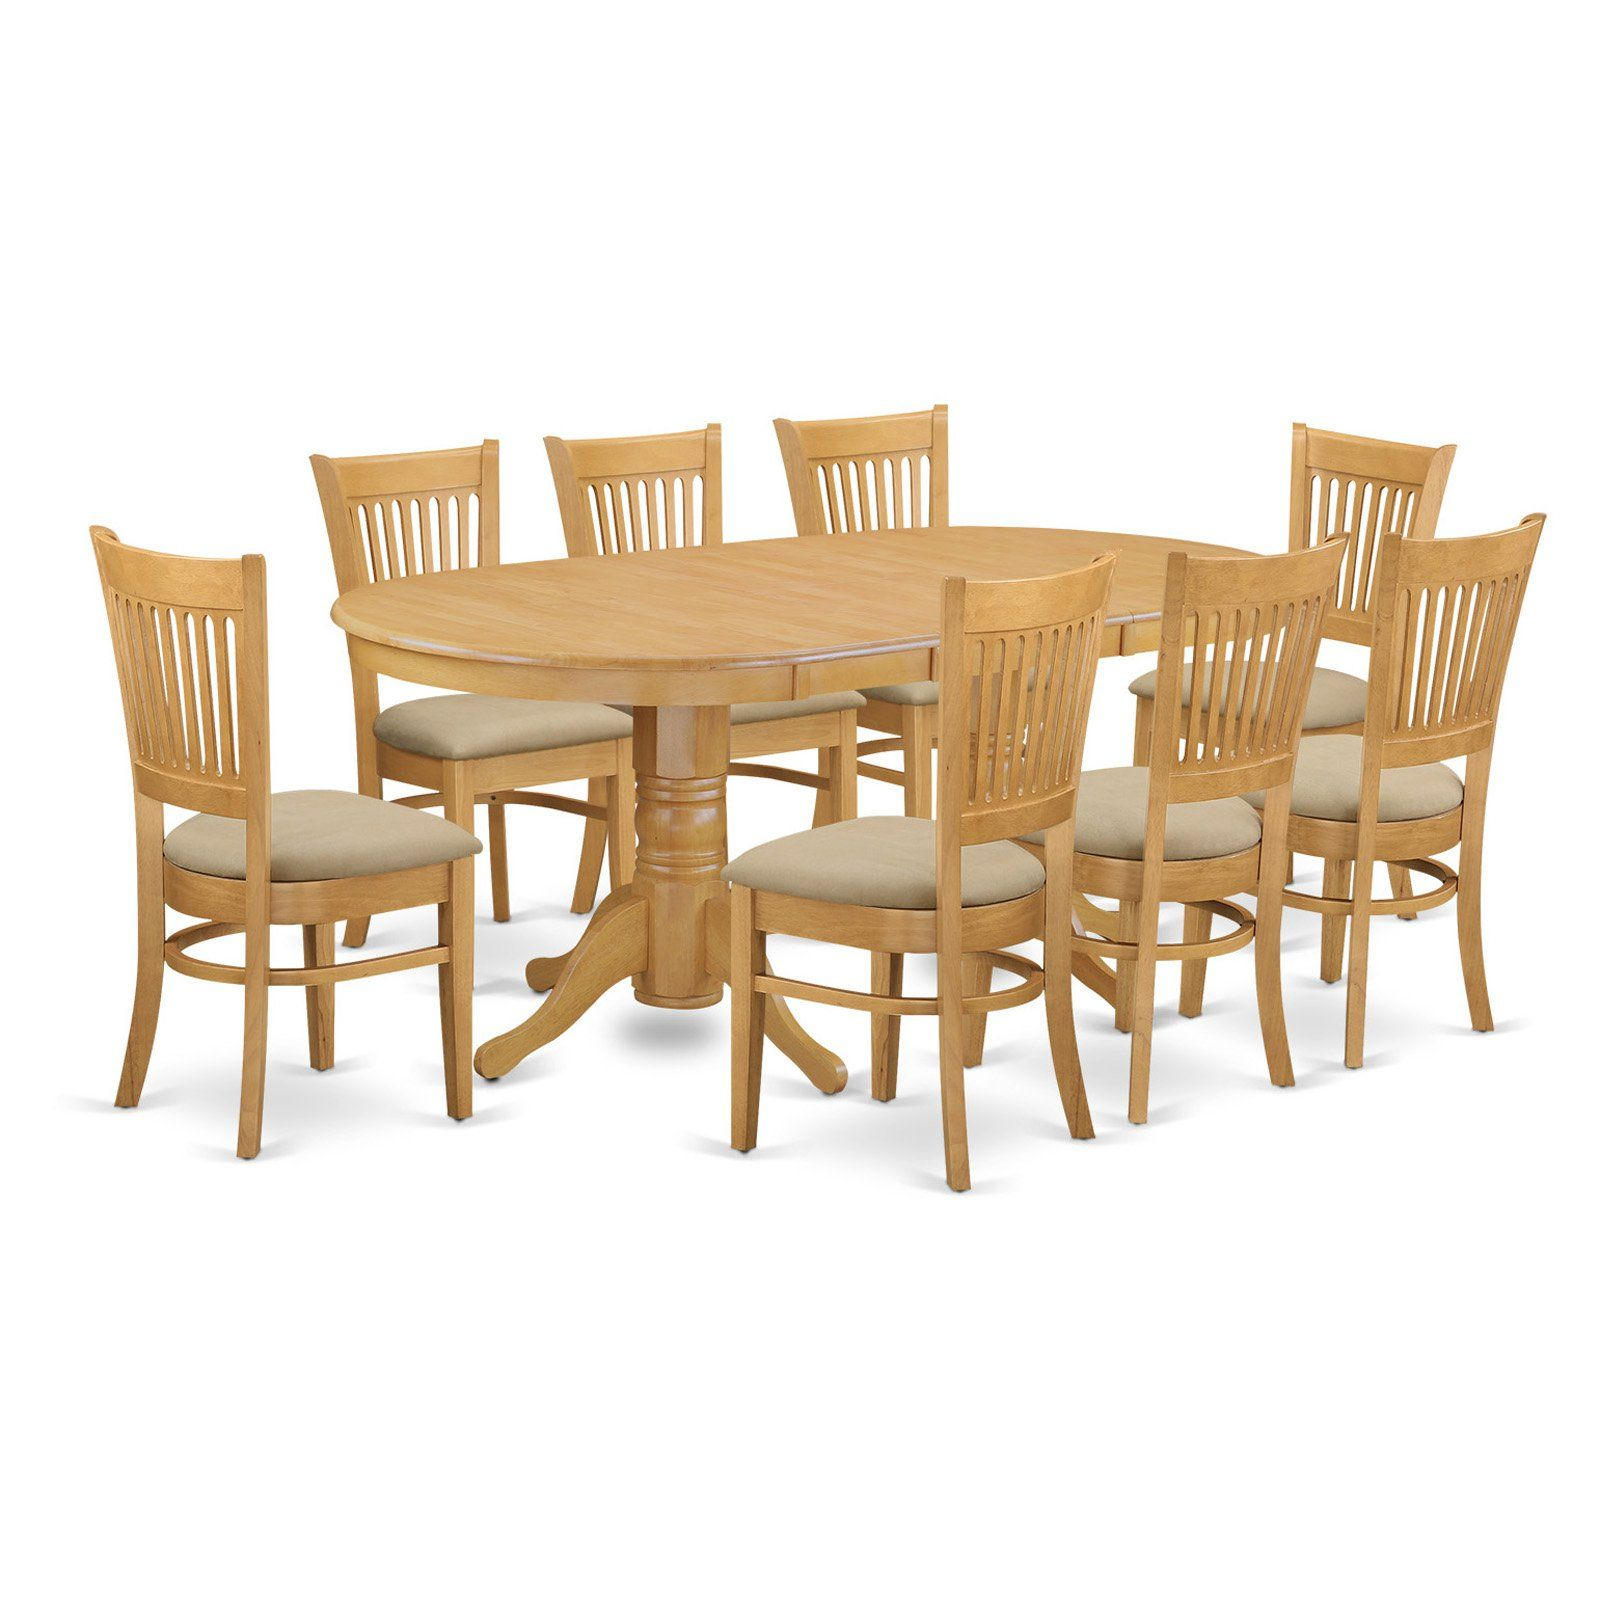 East West Furniture Vancouver 5 Piece Hepplewhite Modern Dining